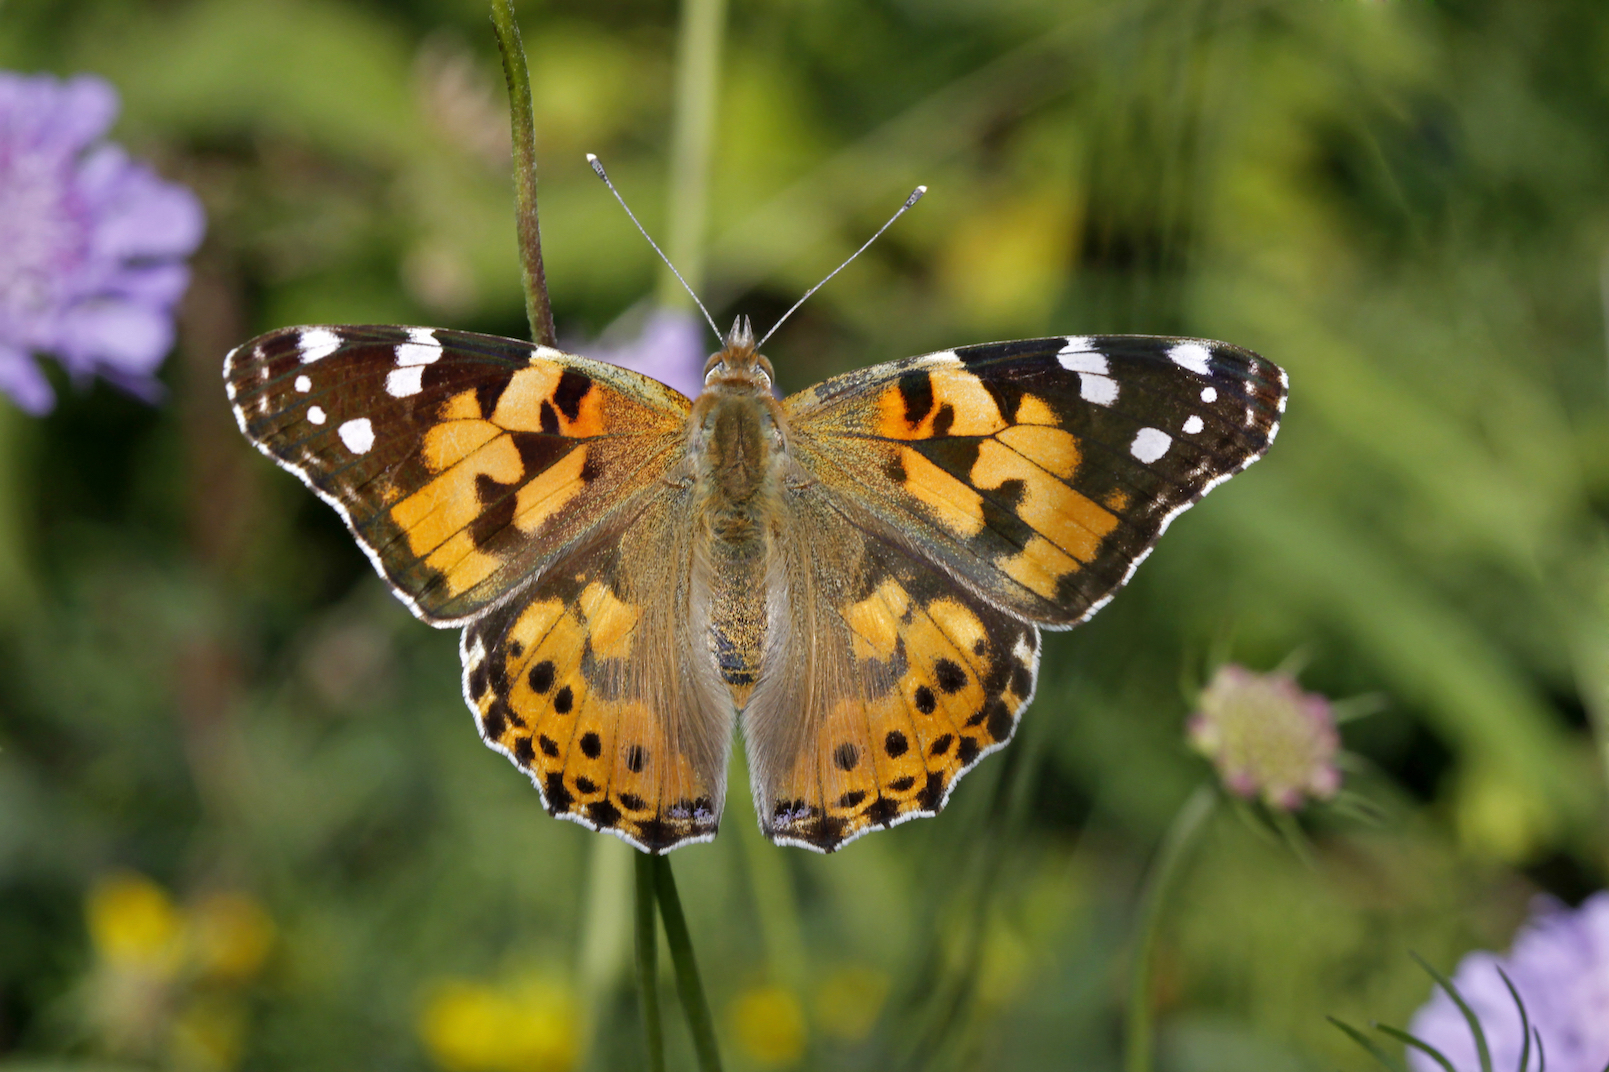 The painted lady butterfly makes the longest known migration of any butterfly to date, according to new research.